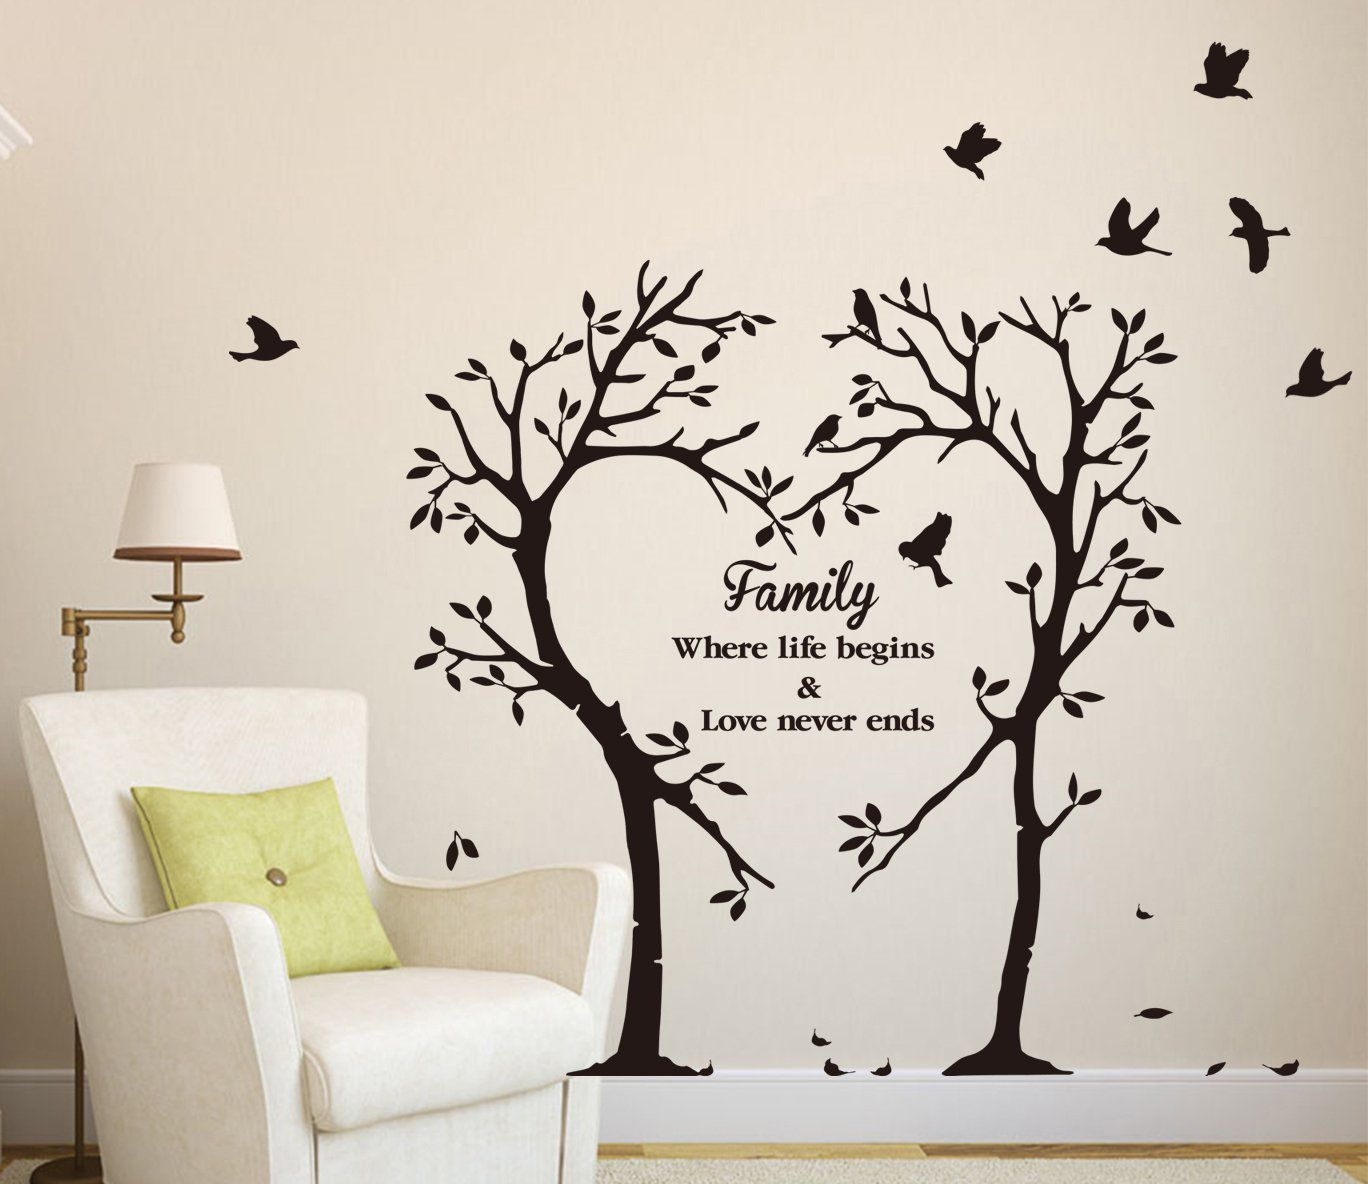 Wall Art Decor Ideas, Lamp Tree Wall Art Decal Simple Great Nice Wallpaper  Amazing Photos Paint Large Ecrater Sticker Inspirational: large family tree  wall ...